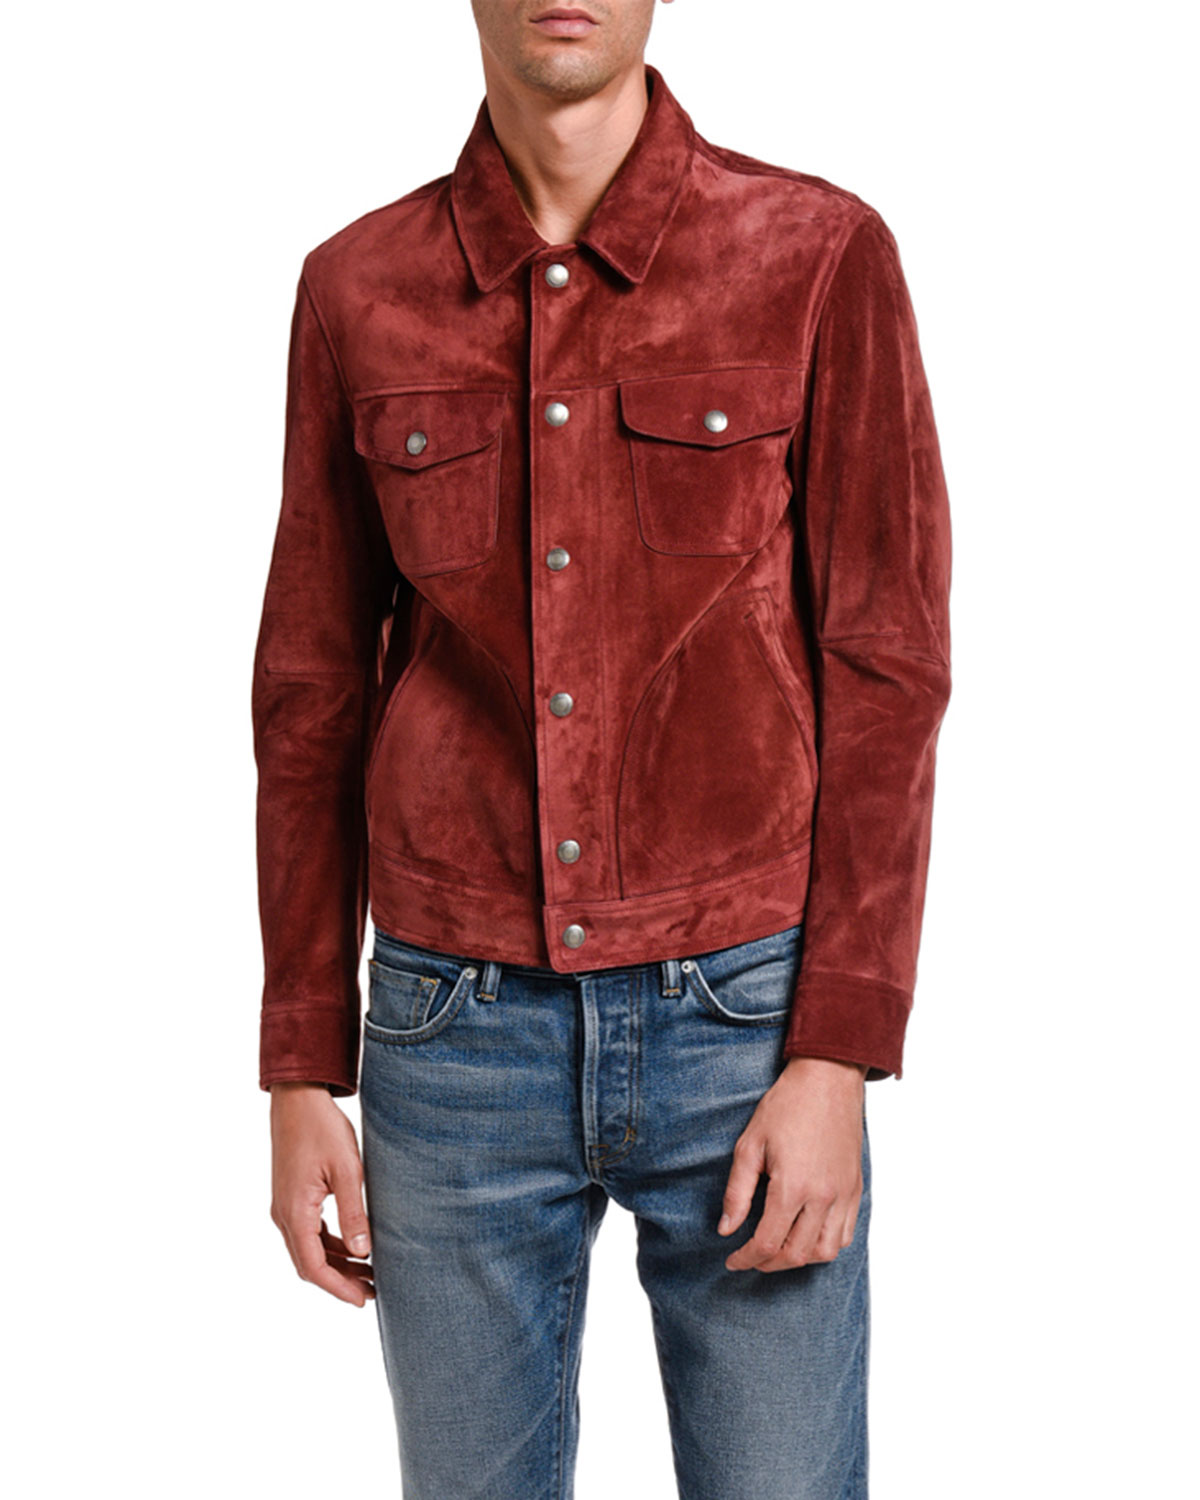 TOM FORD Men's Suede Trucker Jacket